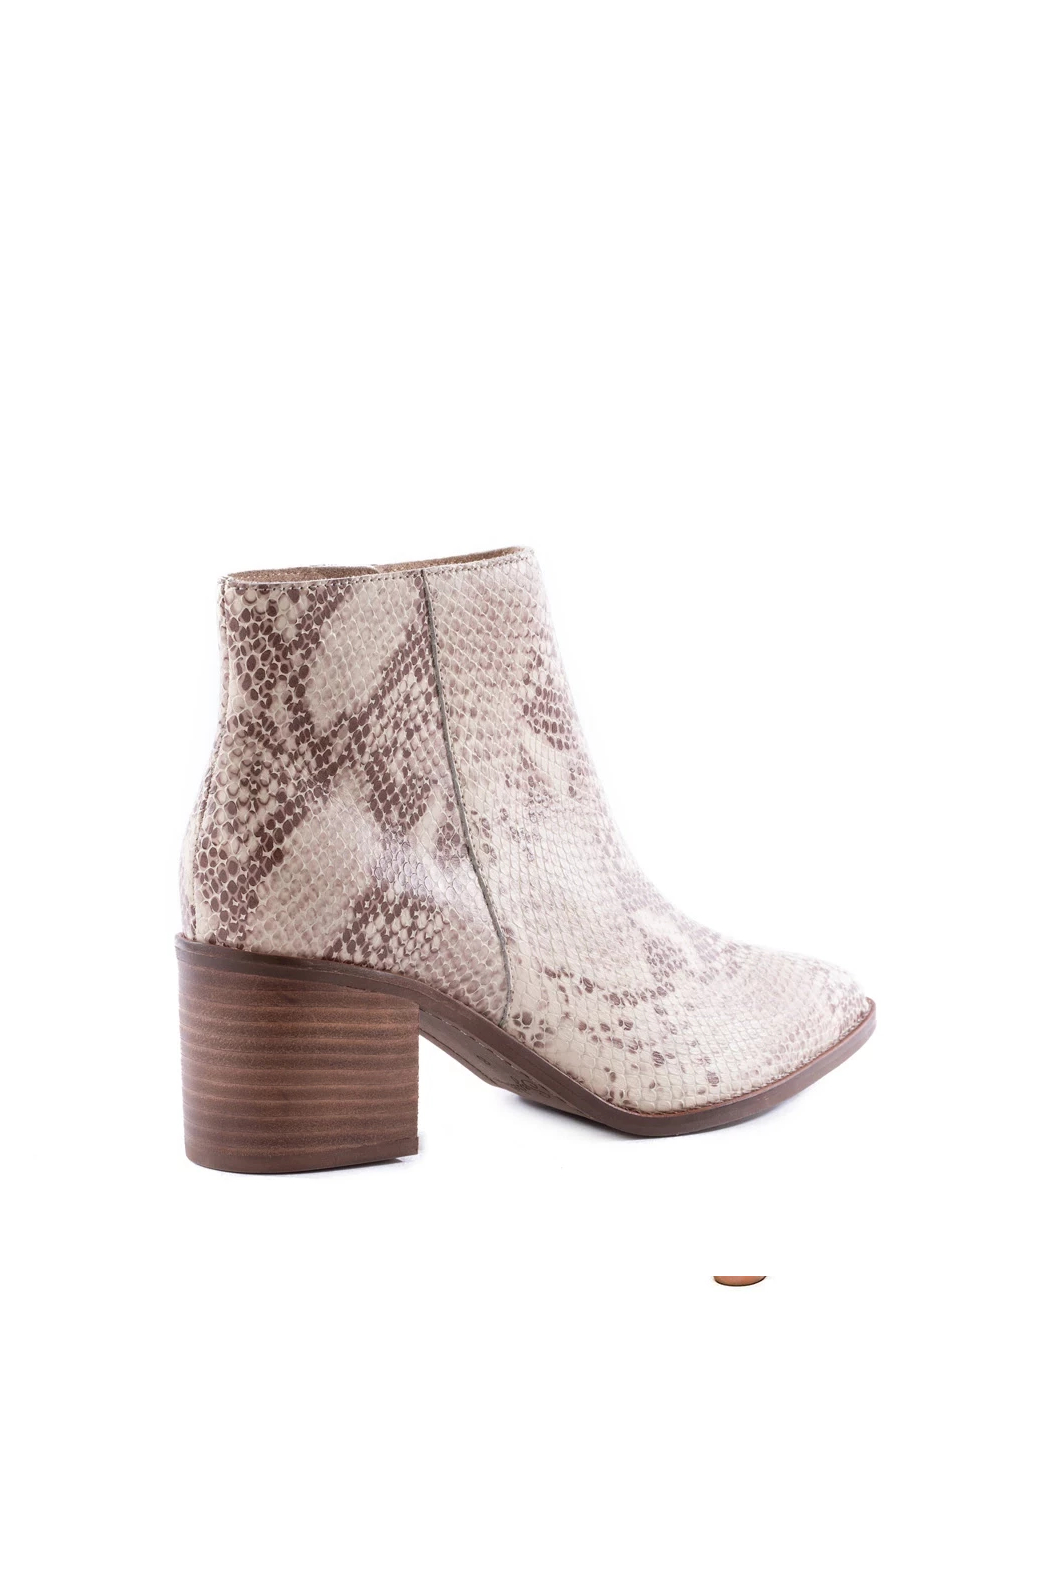 Seychelles For The Occasion Bootie - Front Full Image